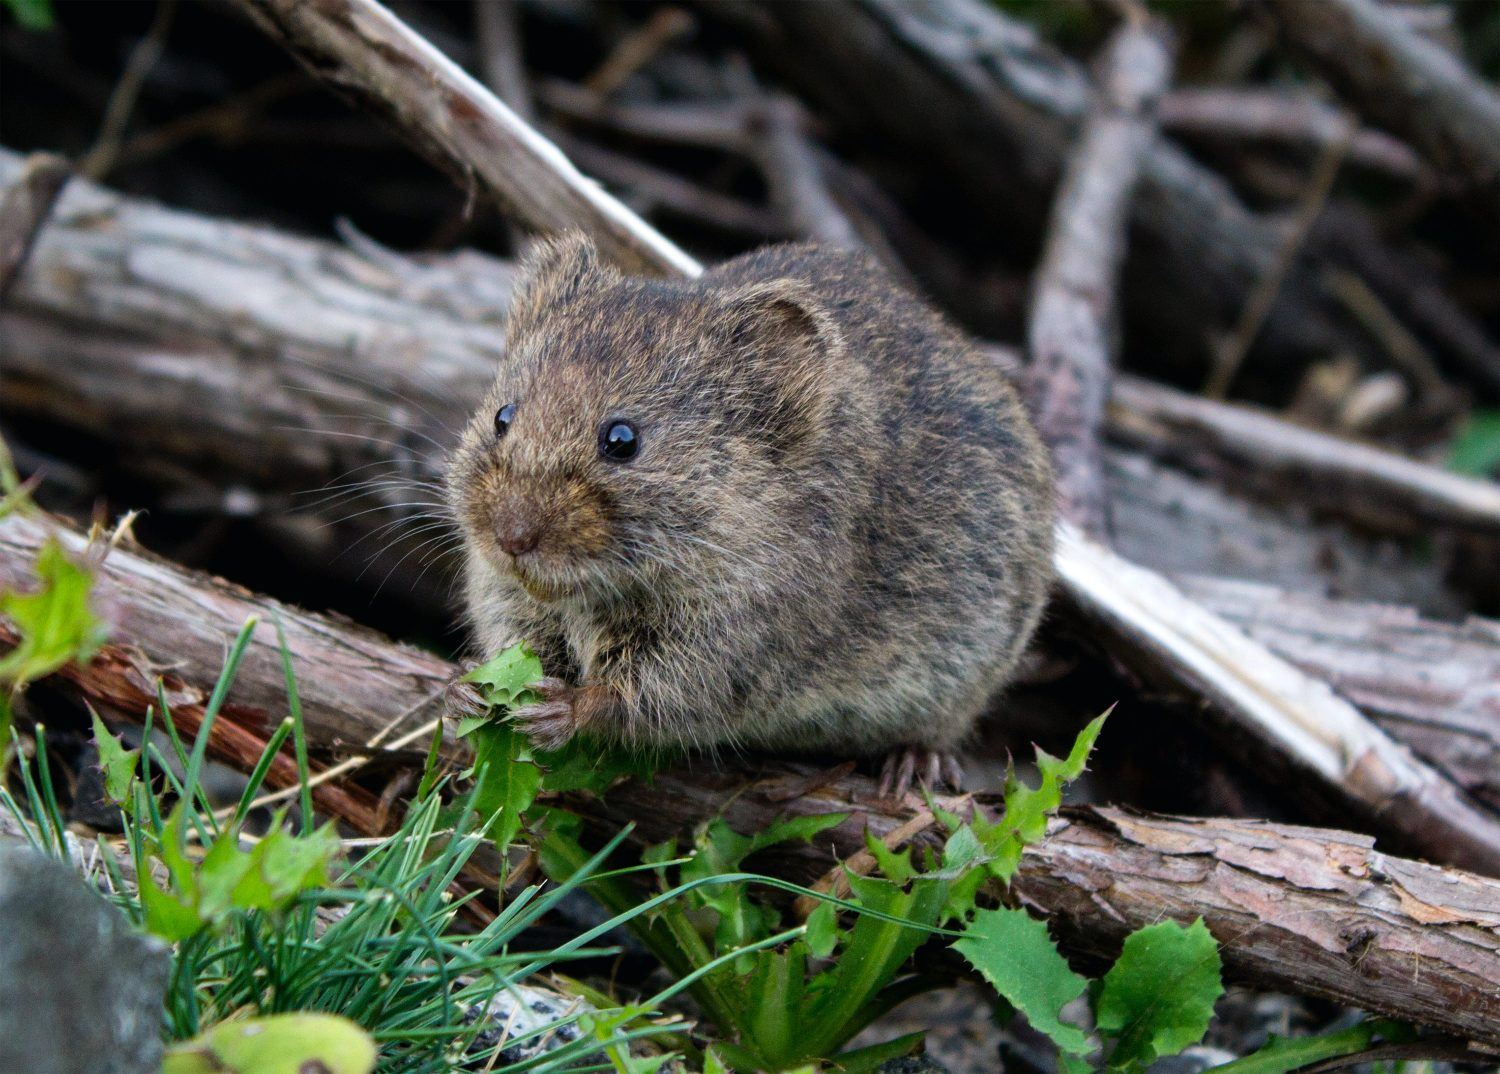 A forest vole